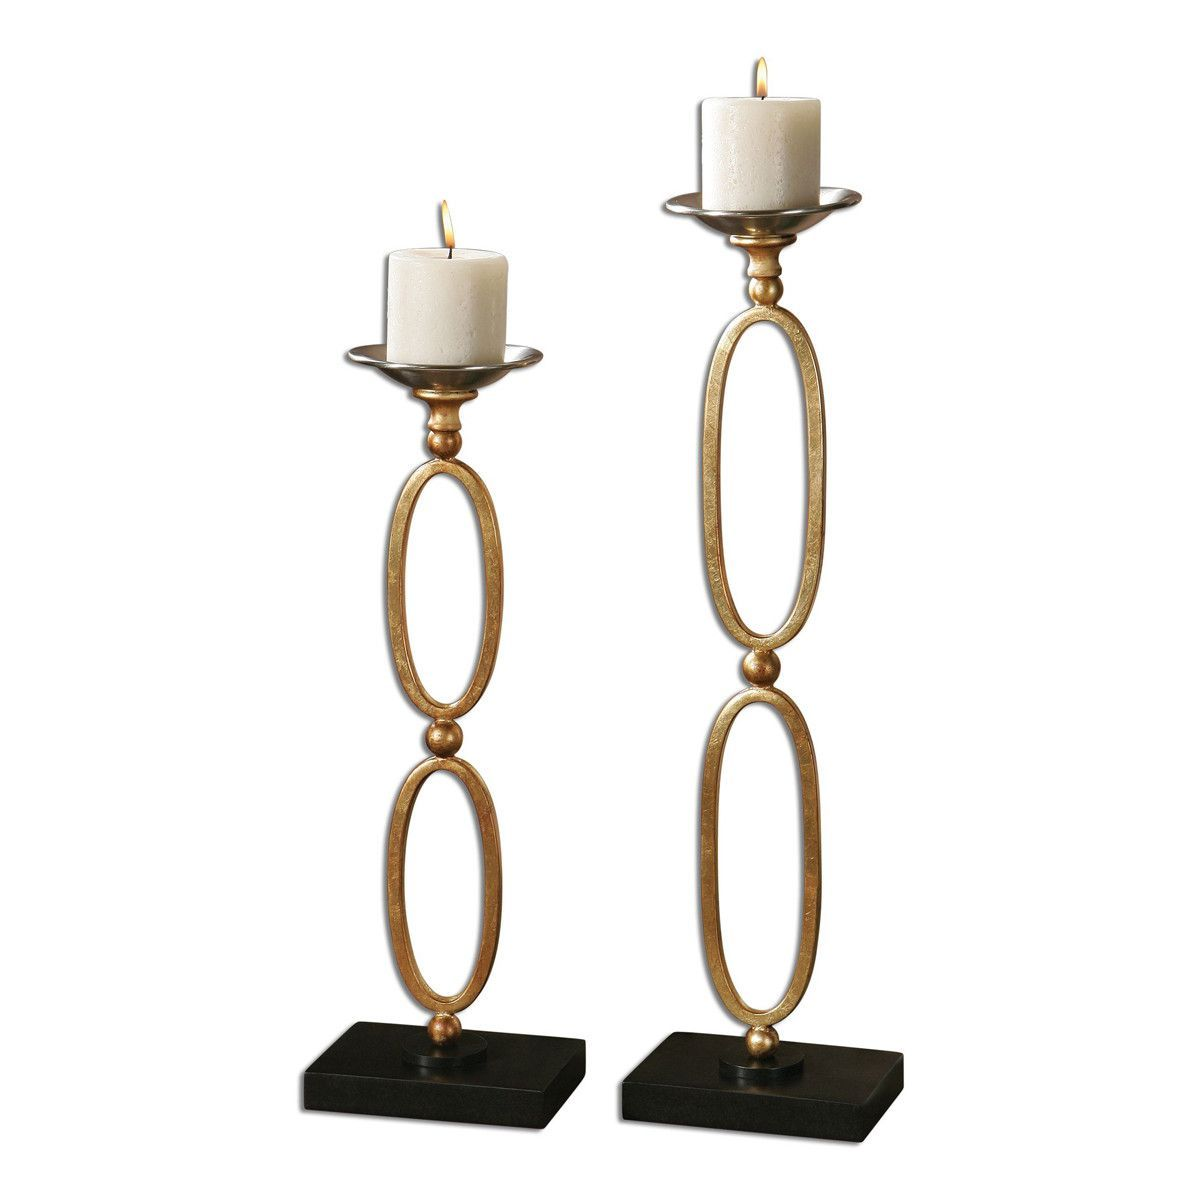 Lauria Chain Link Candleholders, Set of 2